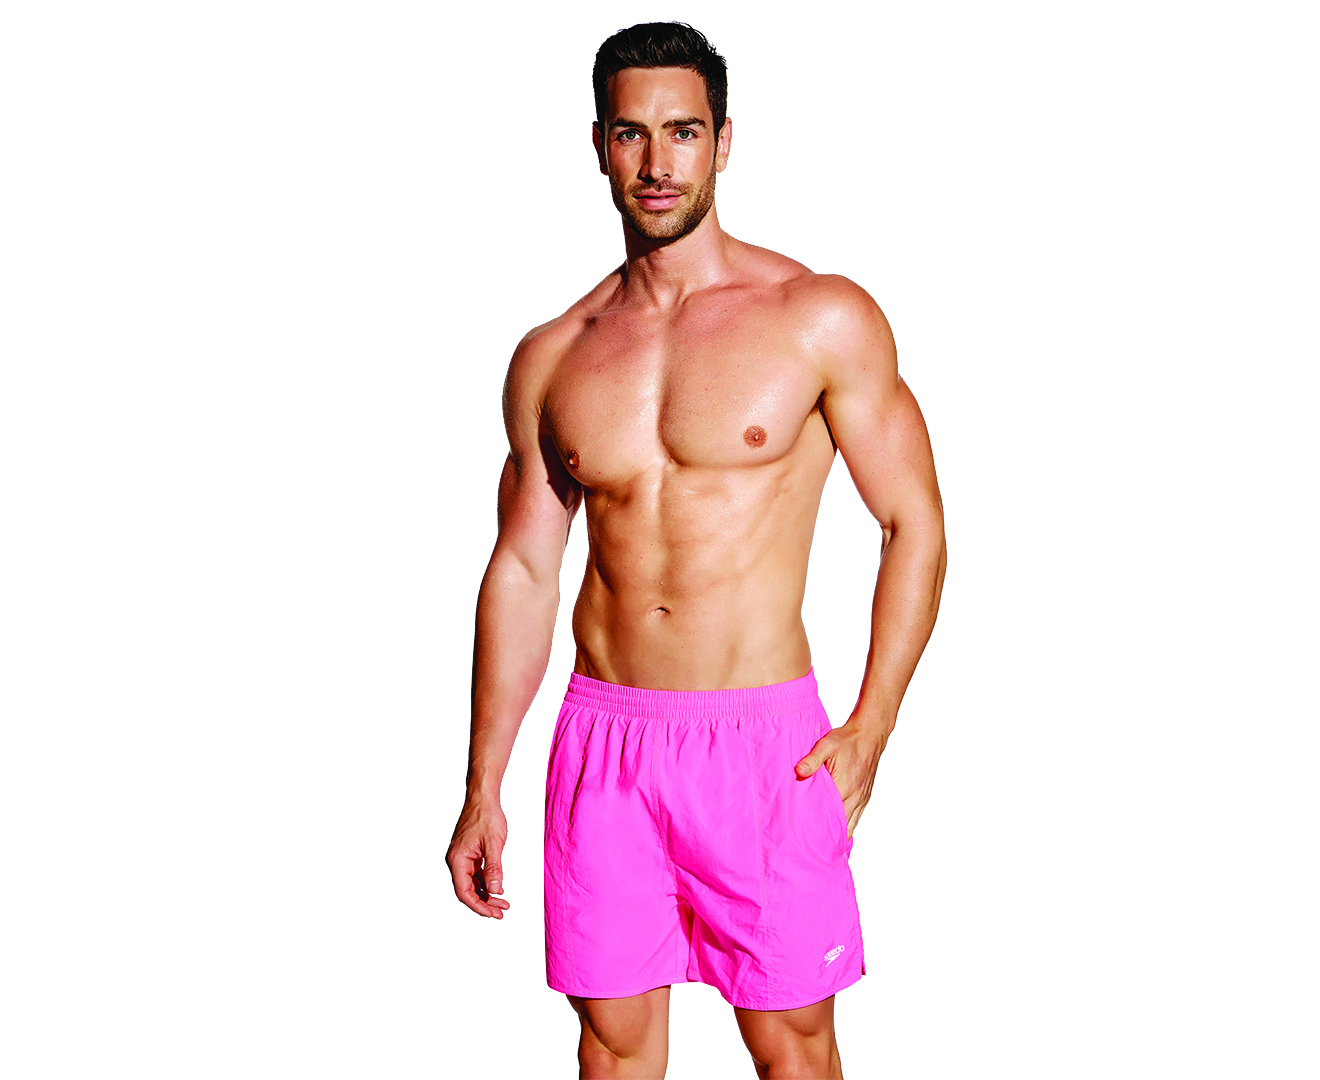 Speedo Men's Flip turns Jammer Pro Lt Swimsuit, 26, Purple/Pink Step out on the deck in style. Part of Speedo 's Flip turns collection, this bold training swimsuit is constructed of ProLT fabric for outstanding comfort and swim after swim.